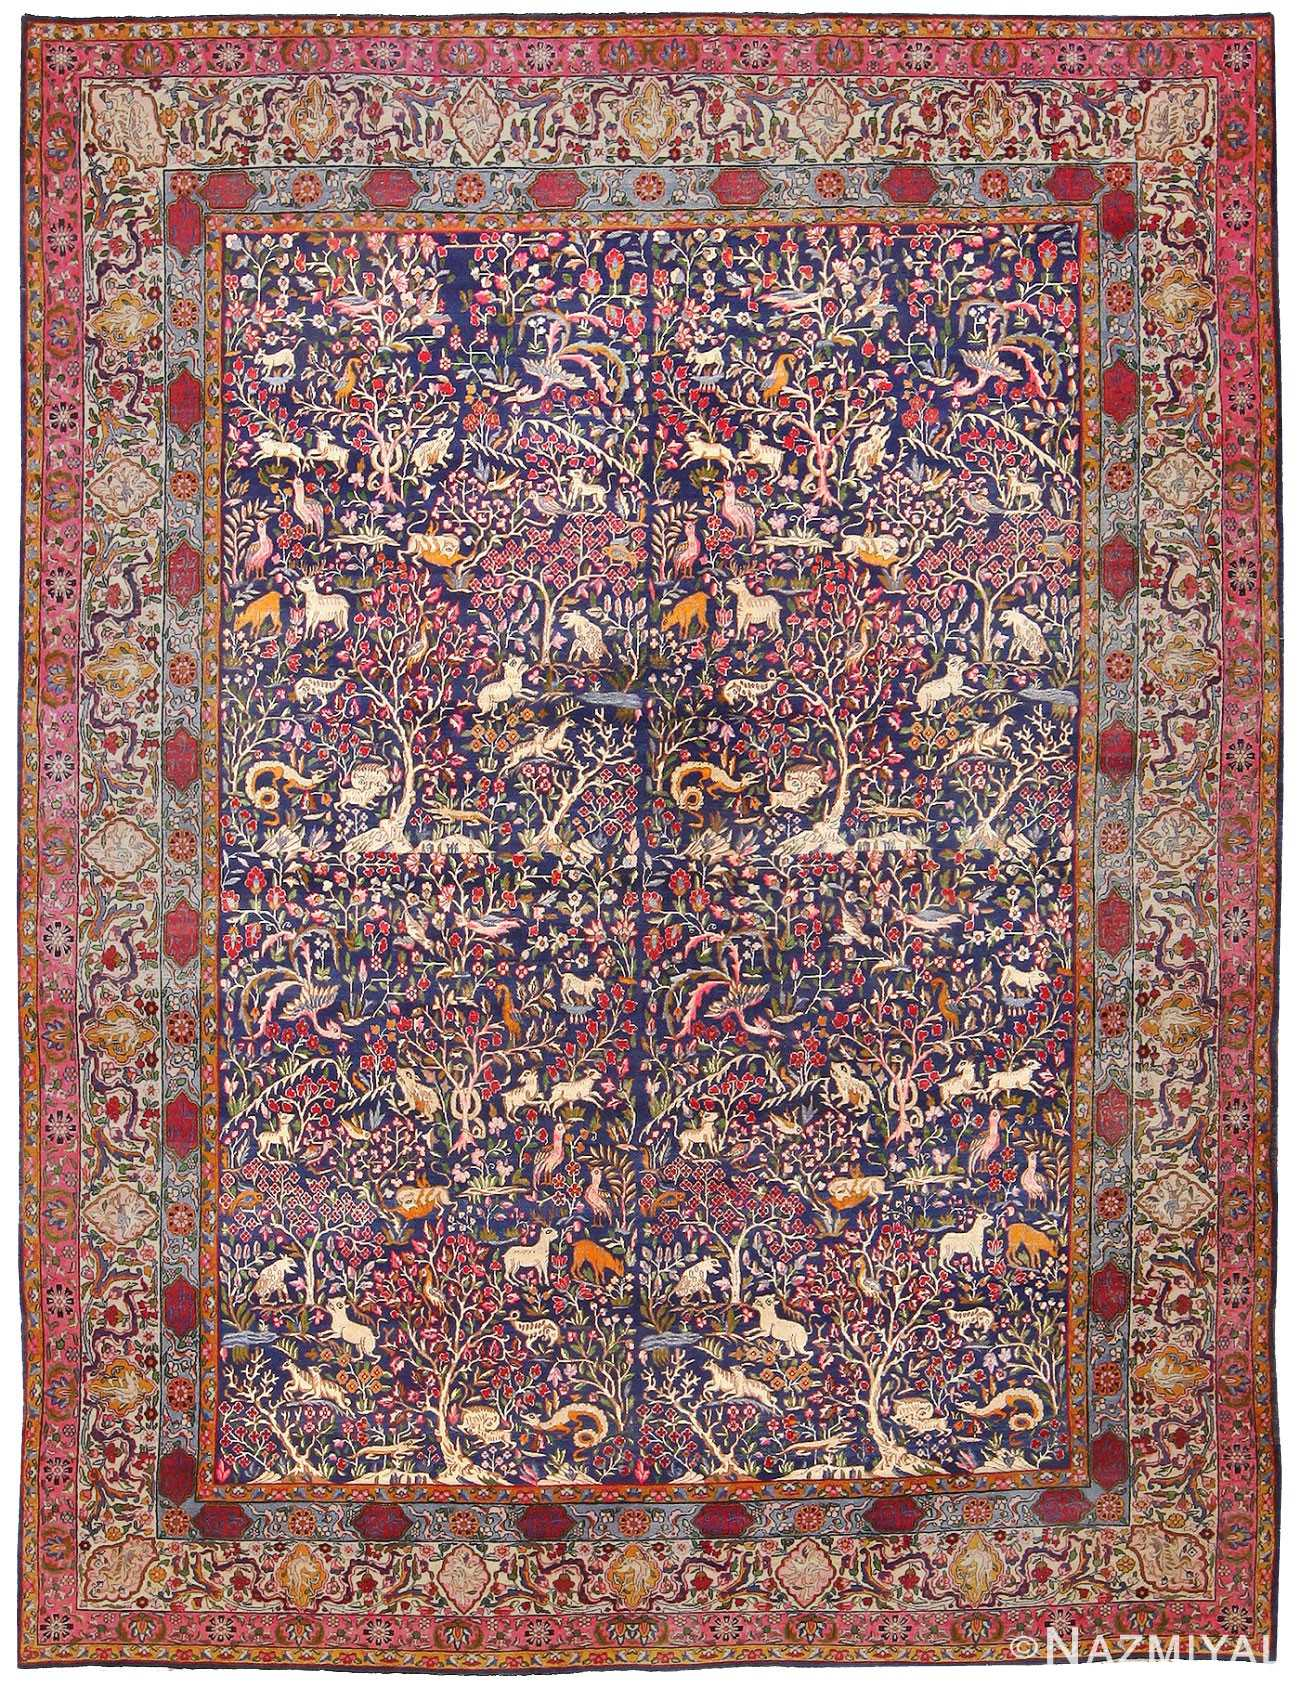 Antique Garden of Paradise Persian Carpet 48340 Detail/Large View